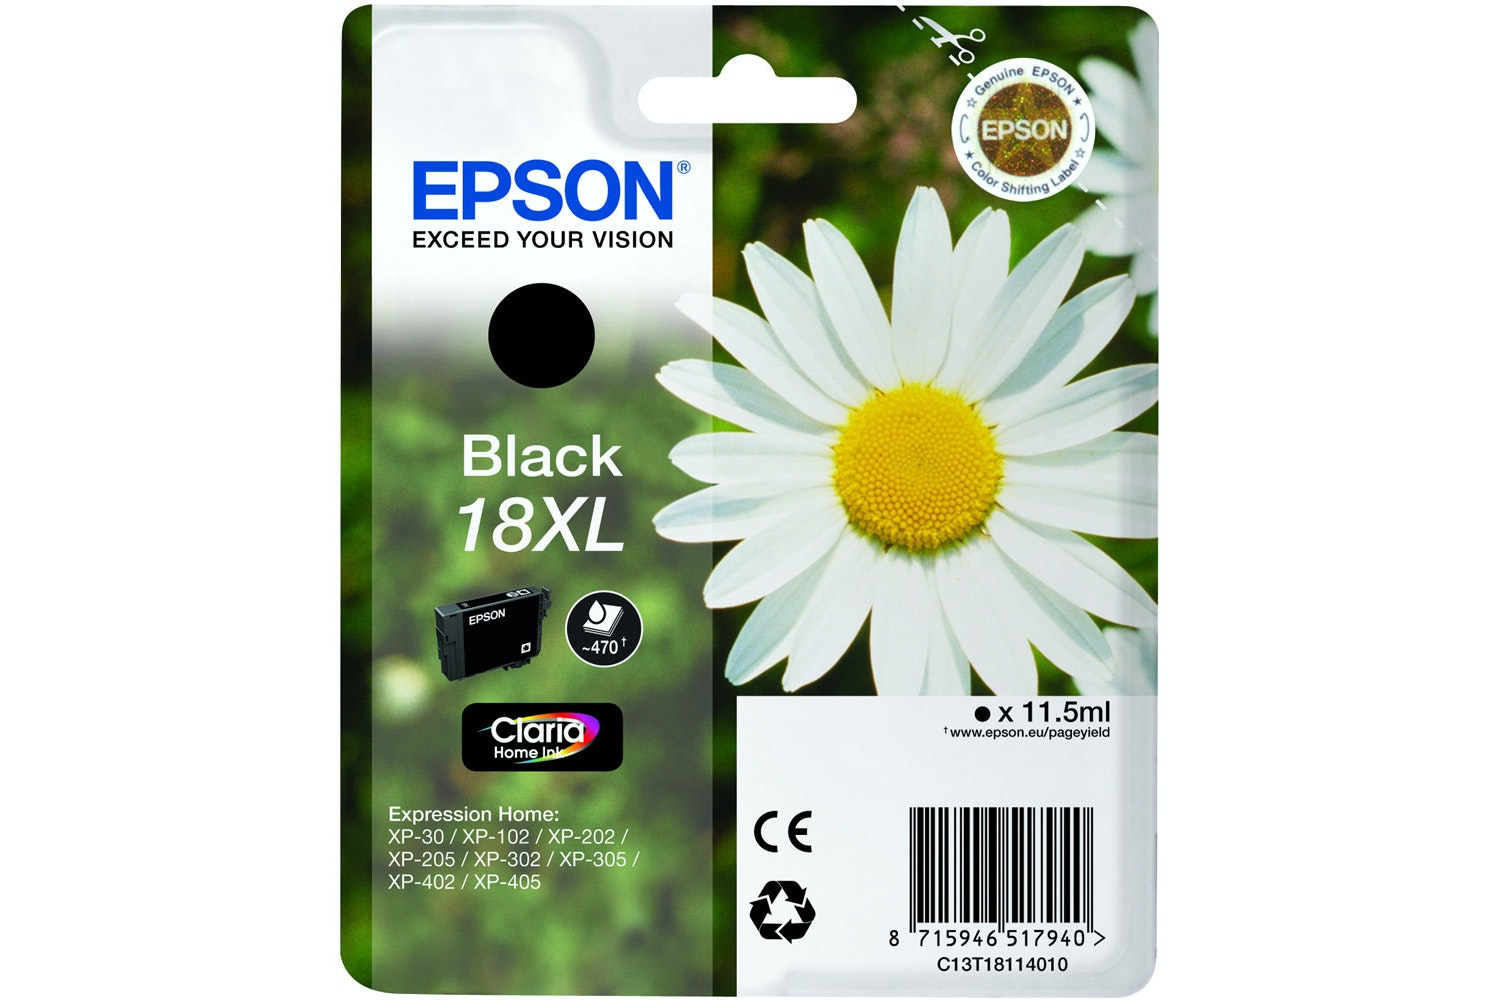 Epson XL Daisy Ink Black